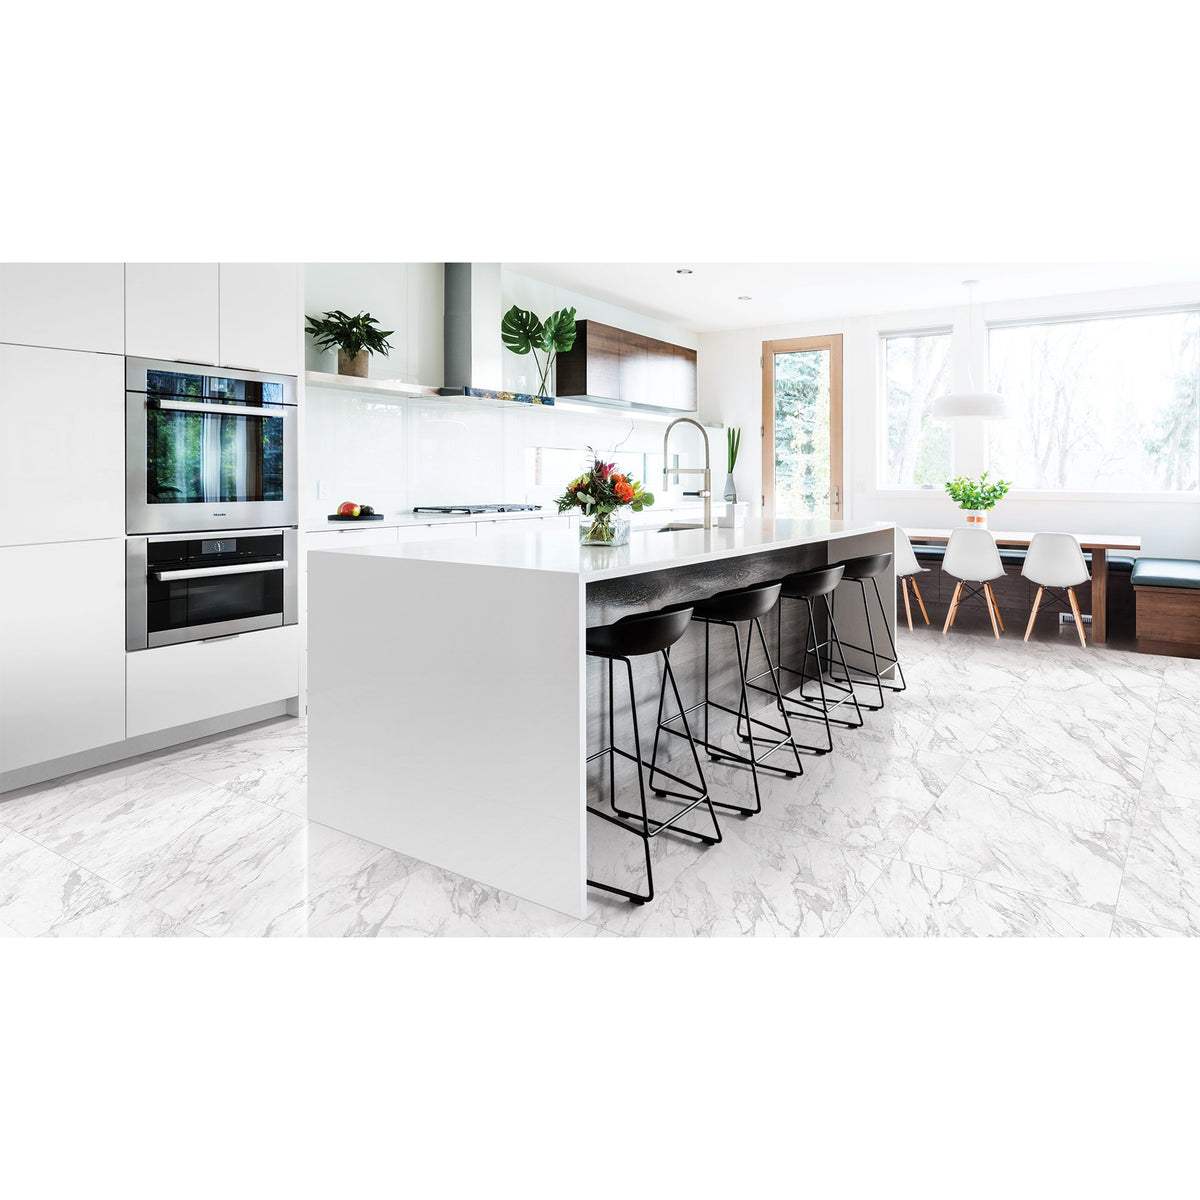 Anatolia - La Marca Glazed Porcelain 24 in. x 48 in. Polished Tile - Statuarietto Installed